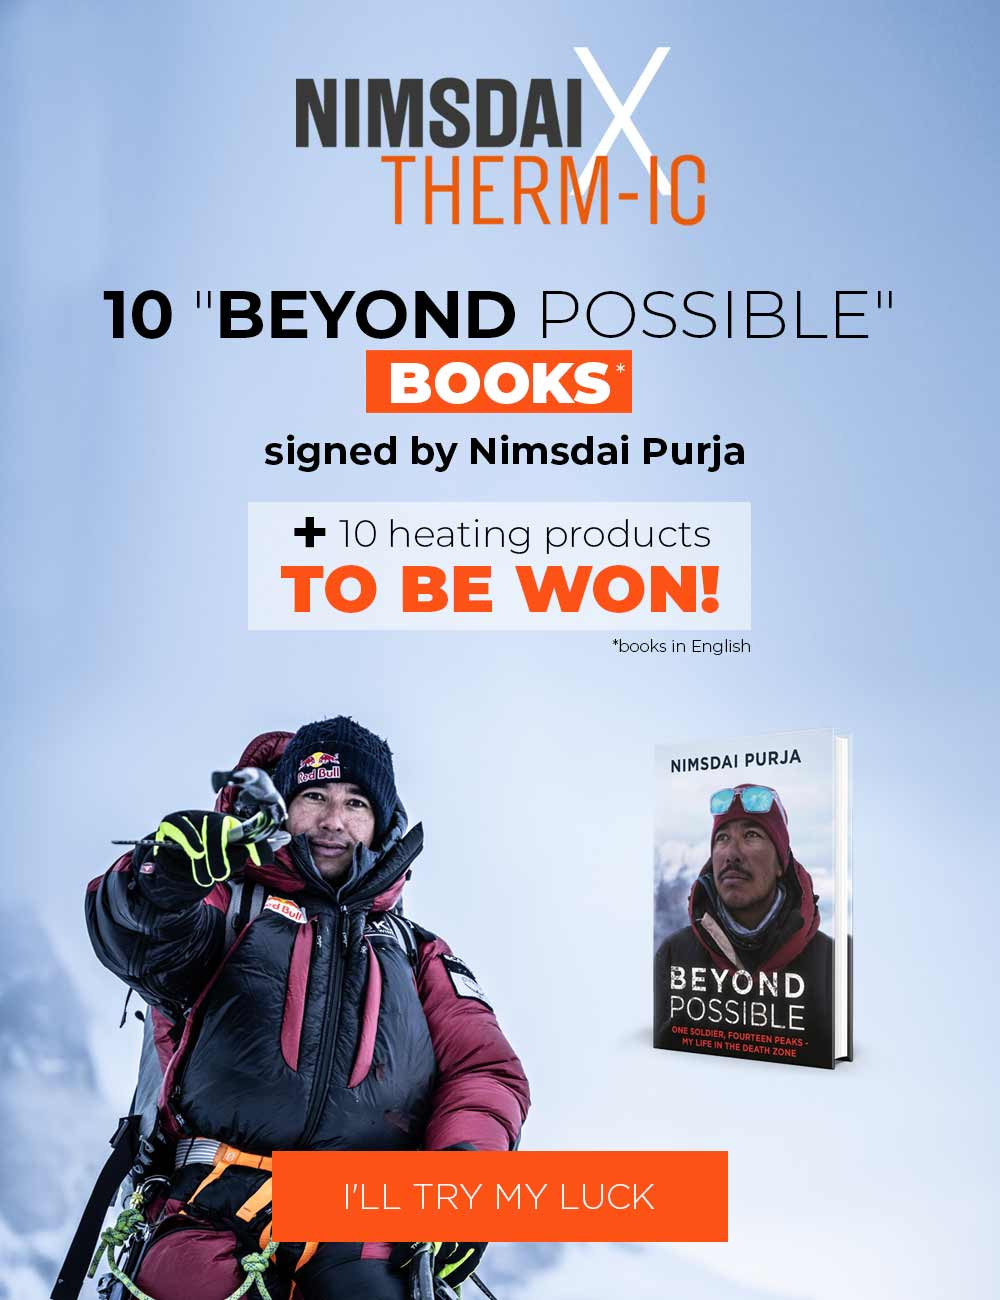 Try to win a signed book of Nimsdai Purja and a heated product!